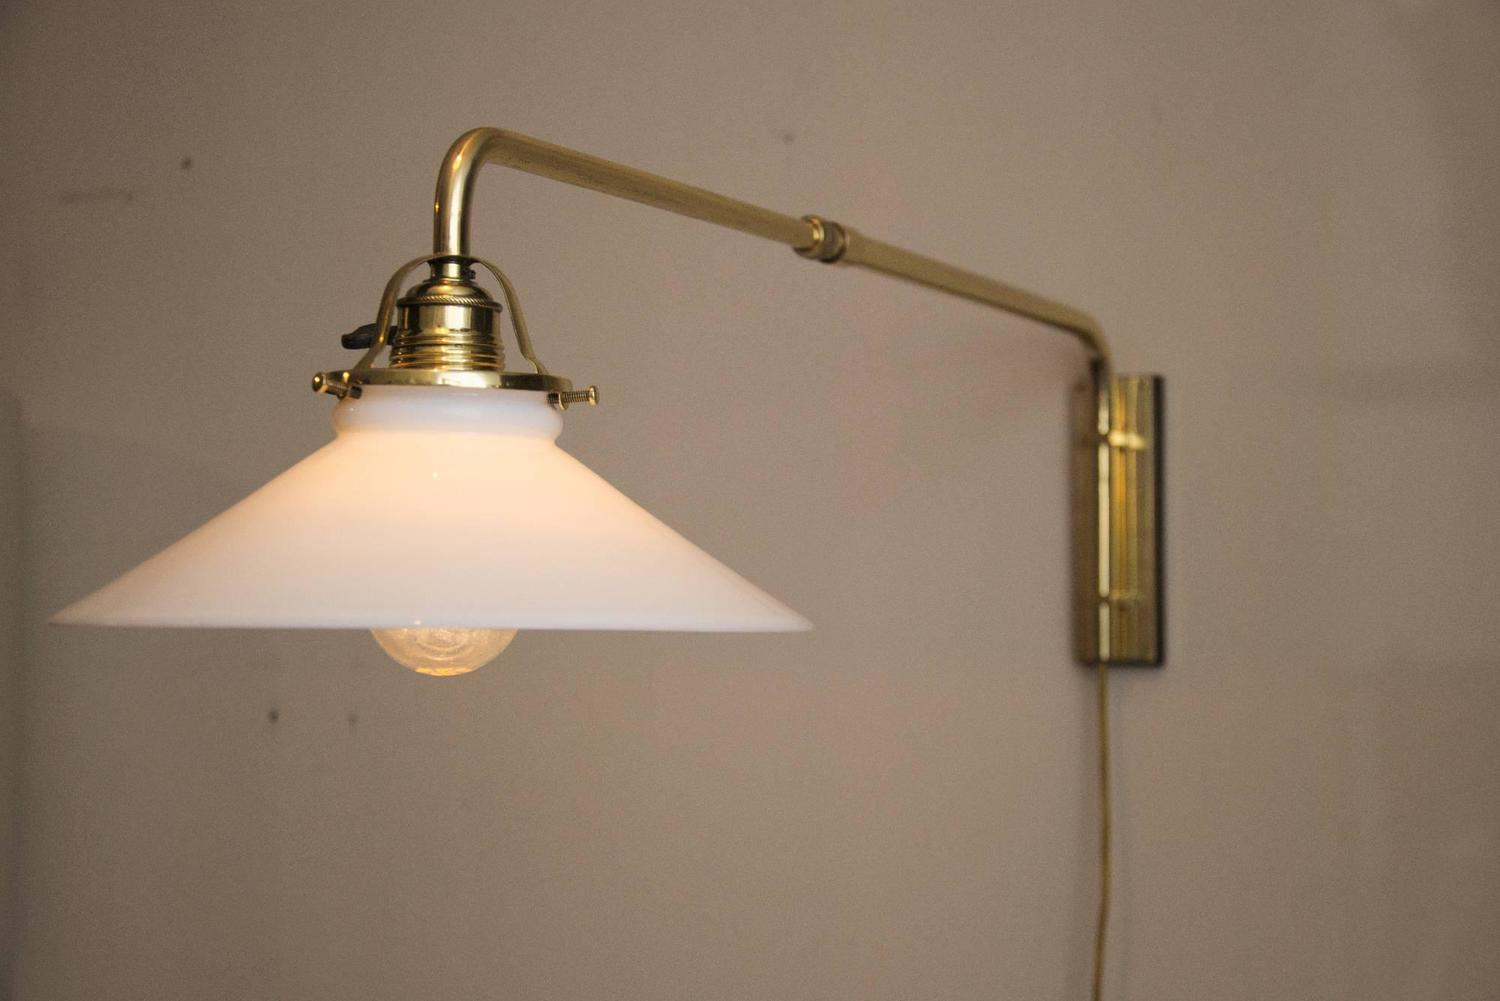 Wall Lamp Art Deco : Adjustable Art Deco Wall Lamp For Sale at 1stdibs